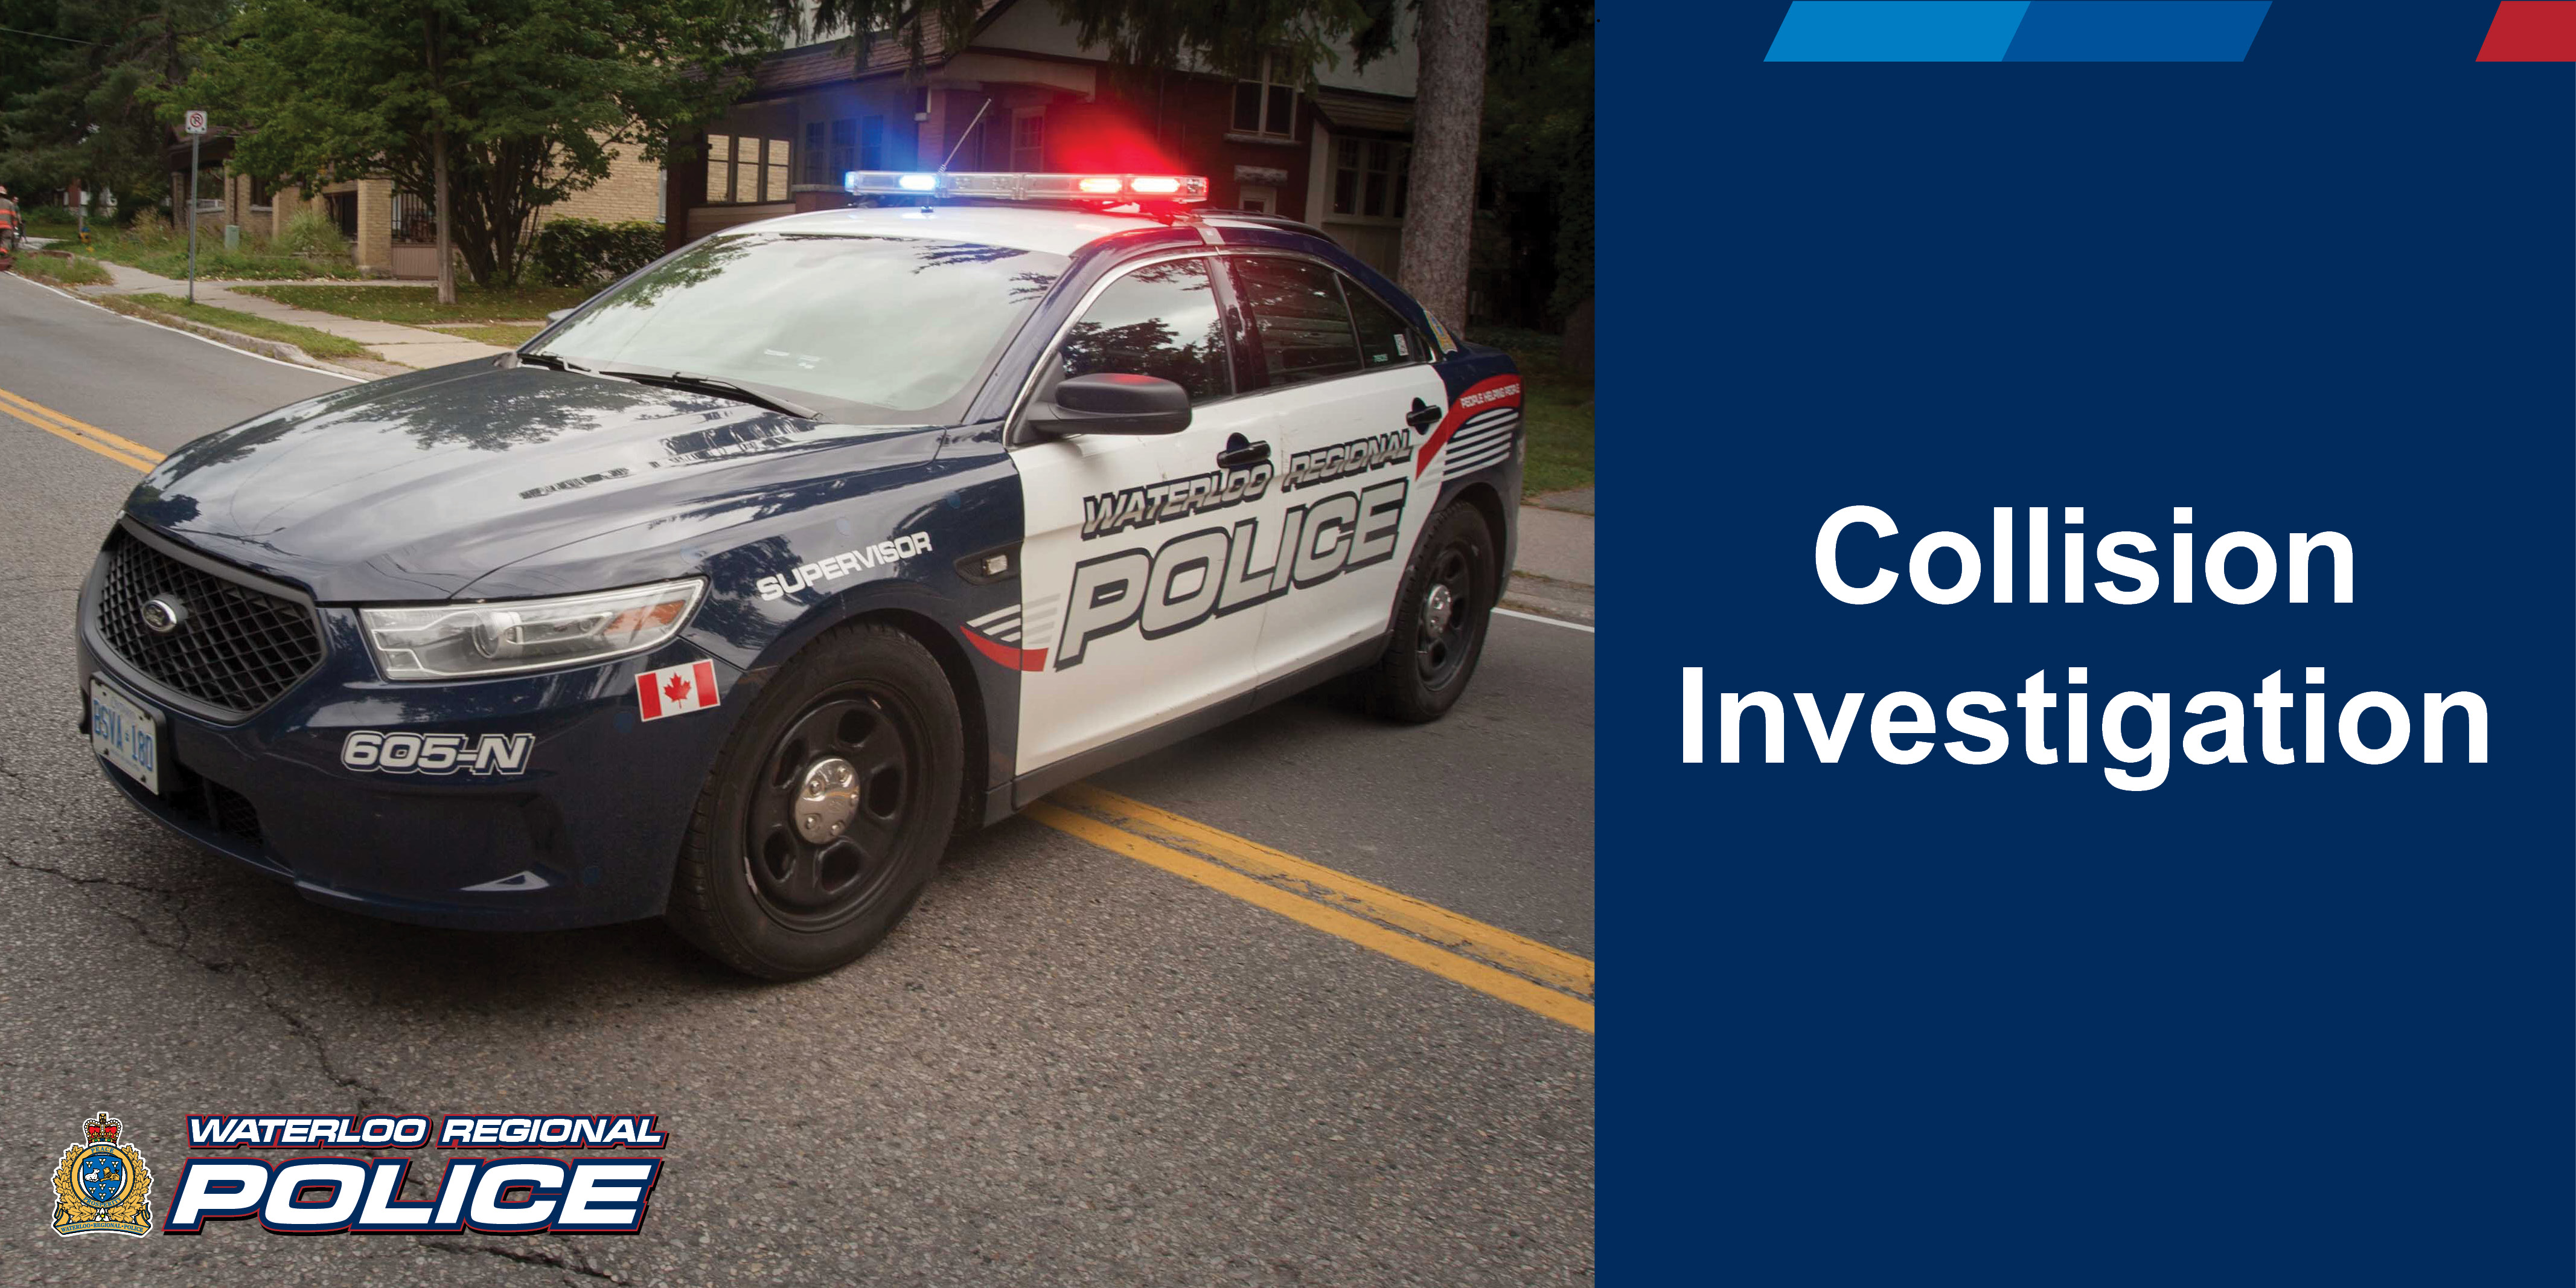 Media Release - Collision Shareable